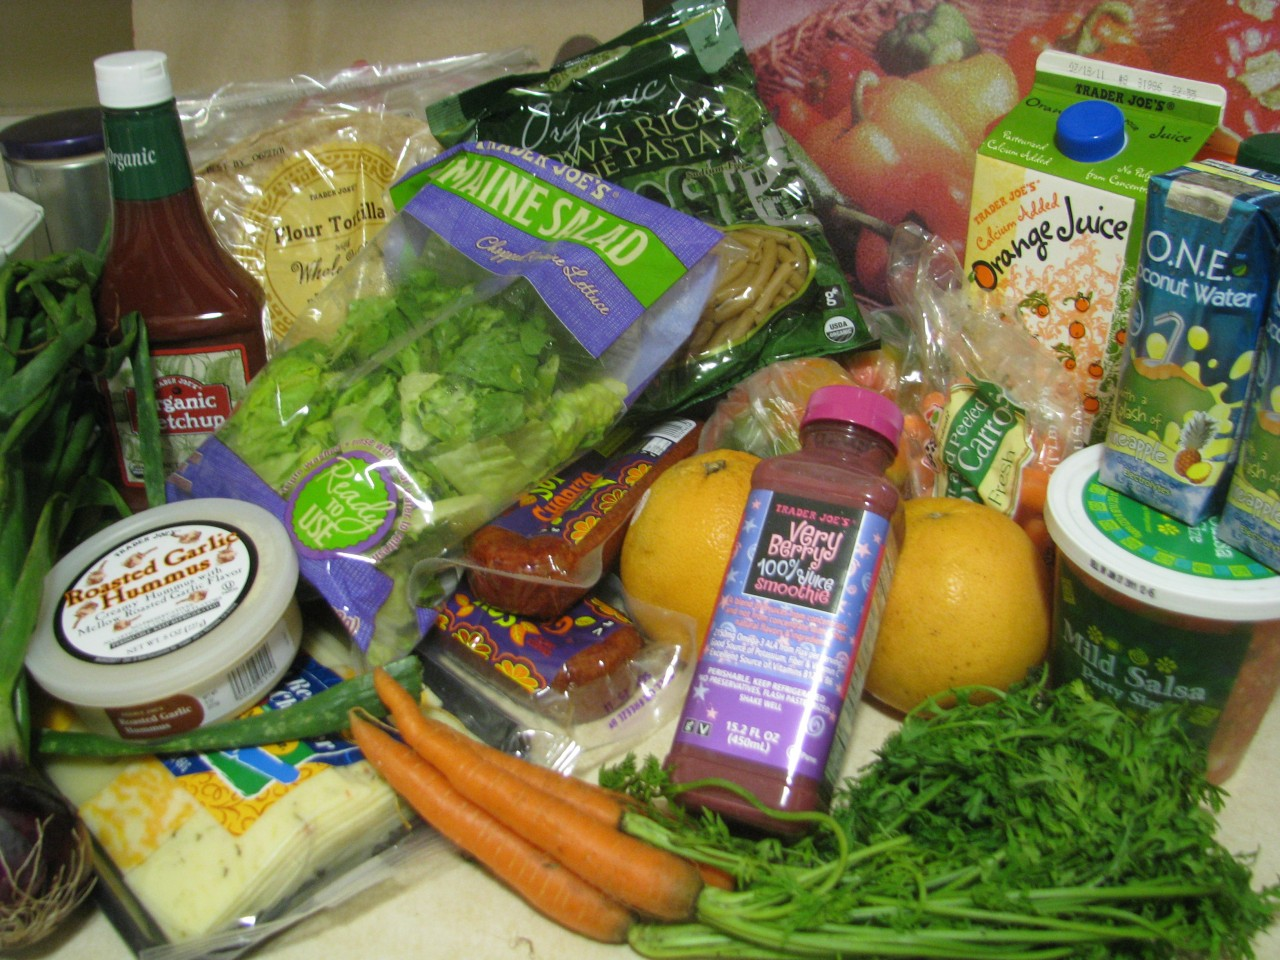 An attempt at healthier eating with a grocery trip To Trader Joes. © Molly Hurford